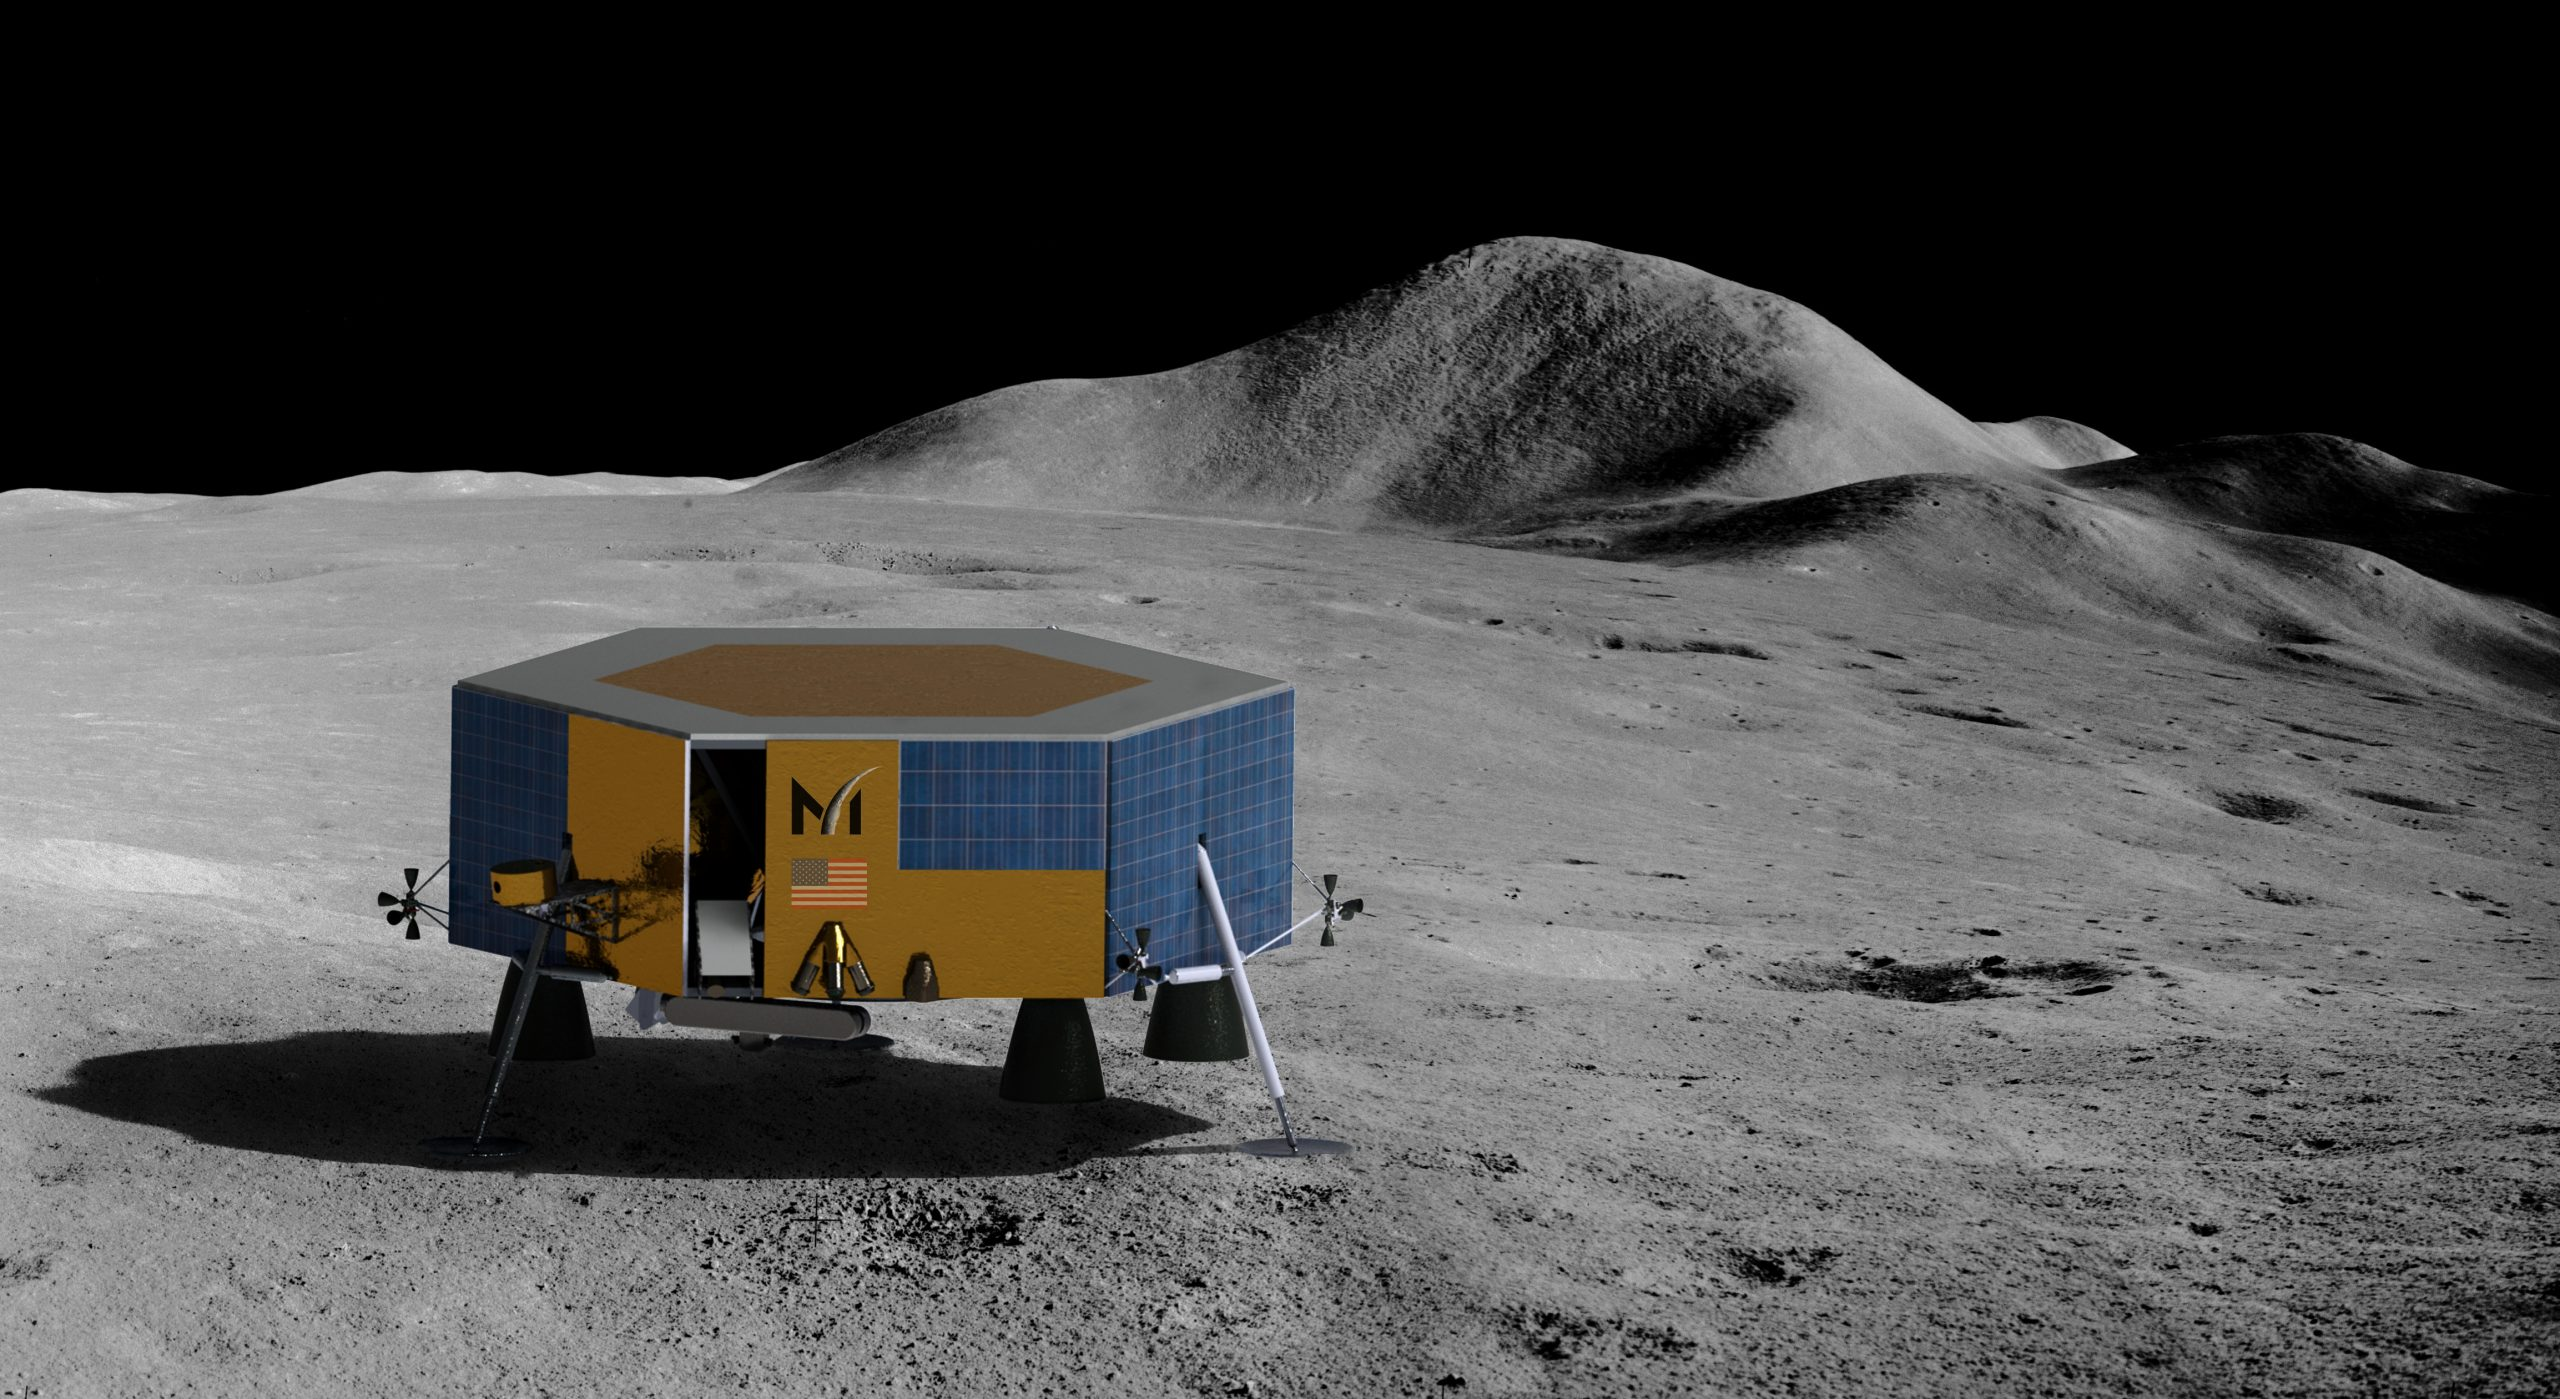 NASA Awards Contract to Deliver Science, Tech to Moon Ahead of Human Missions